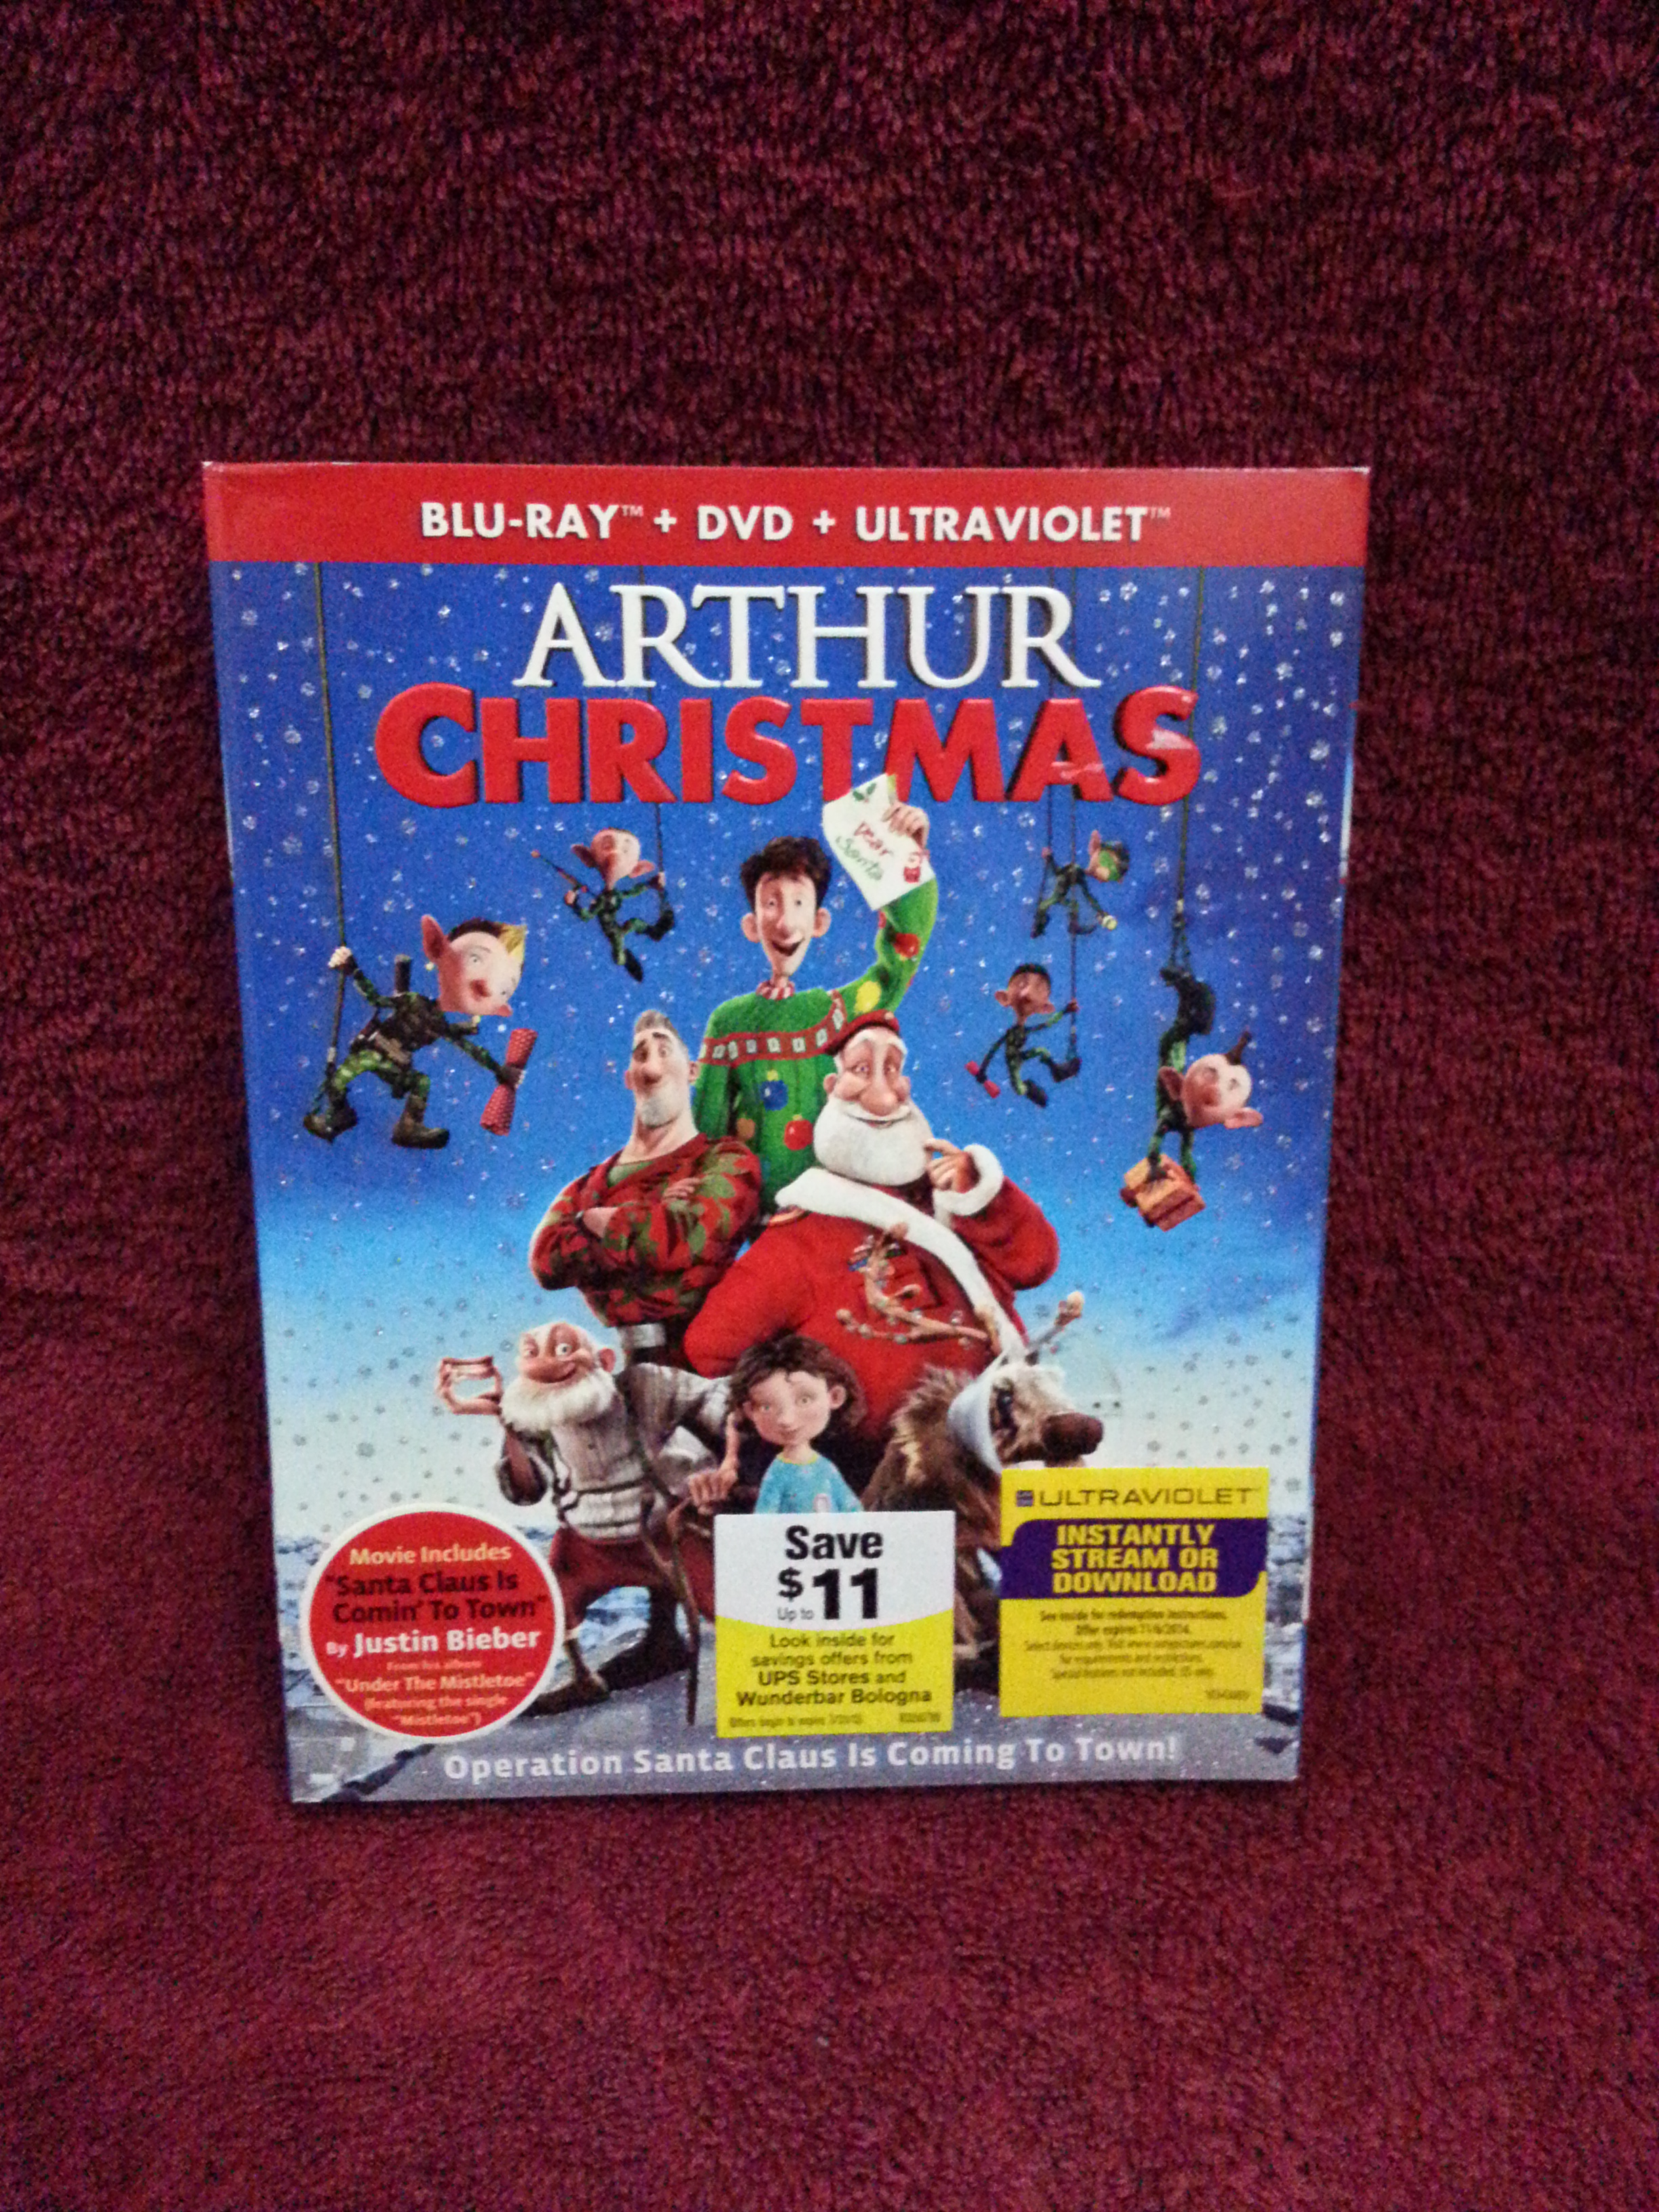 arthur christmas blu ray - Arthur Christmas Full Movie Online